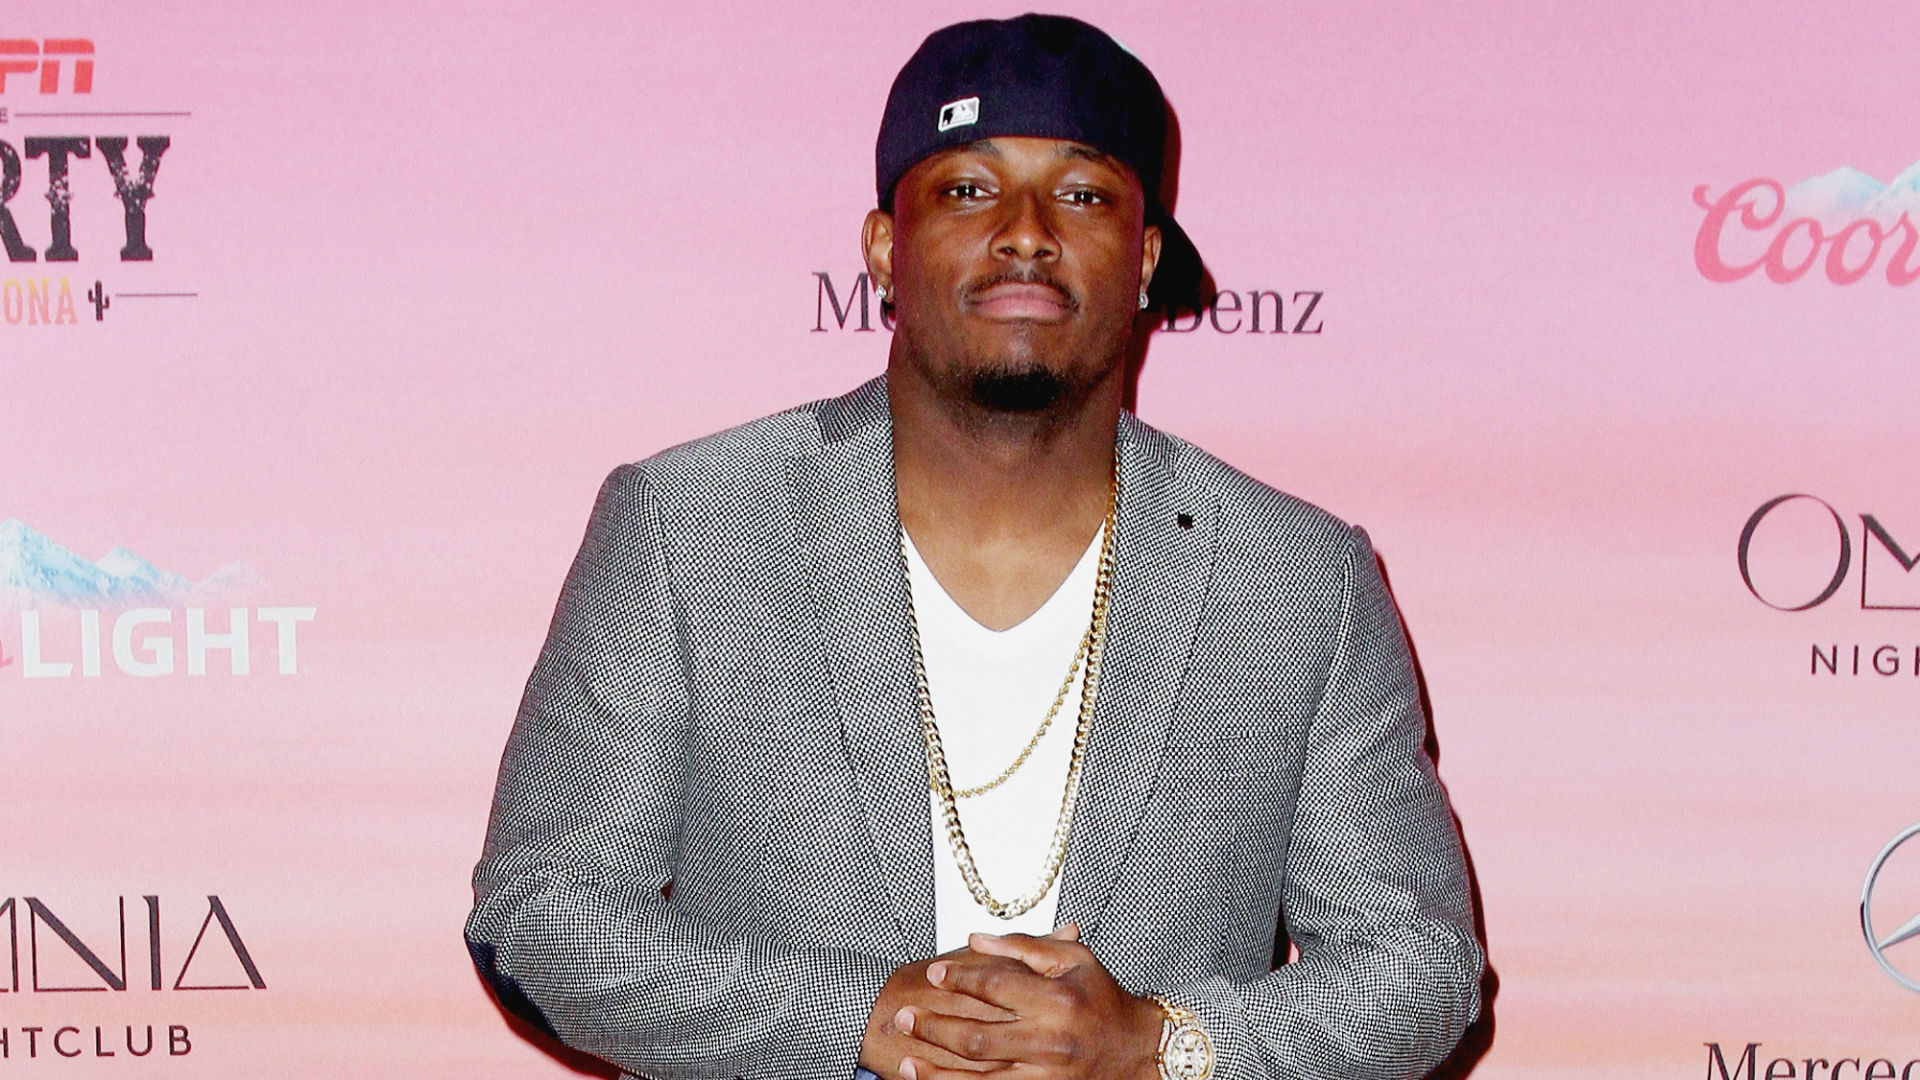 LeSean McCoy on his cancelled 'females only' party: 'There was no big orgy or anything'